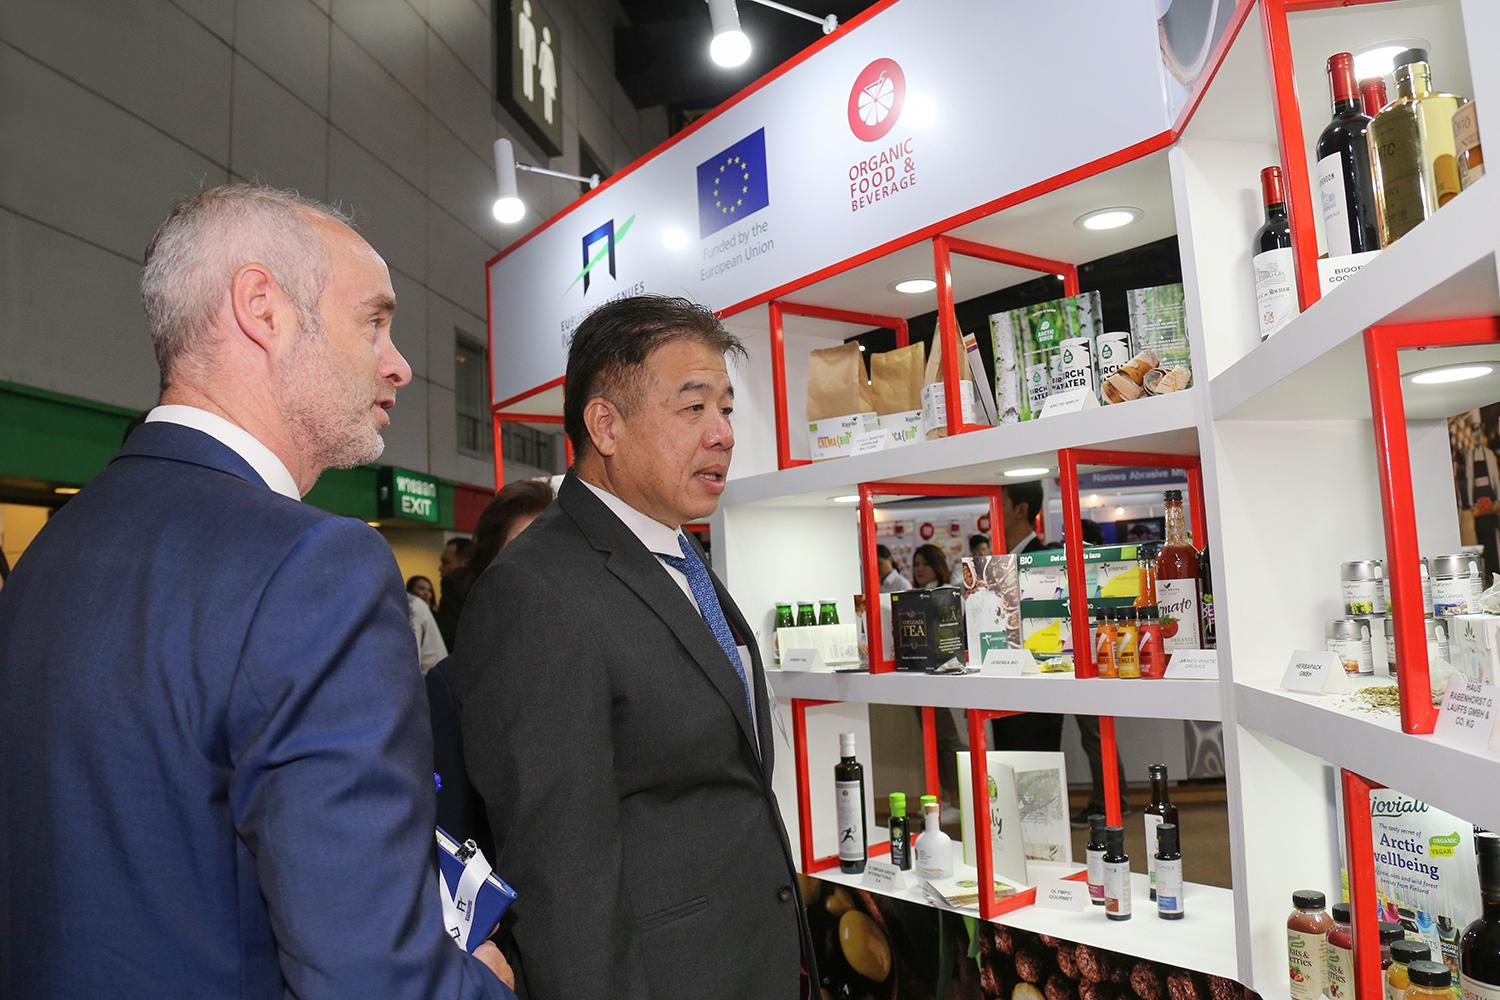 Laurent Lourdais, counsellor of the EU delegation to Thailand, tours the EU pavilion at Food & Hotel Thailand with tourism permanent secretary Chote Trachu. The expo at Bitec ends Saturday.